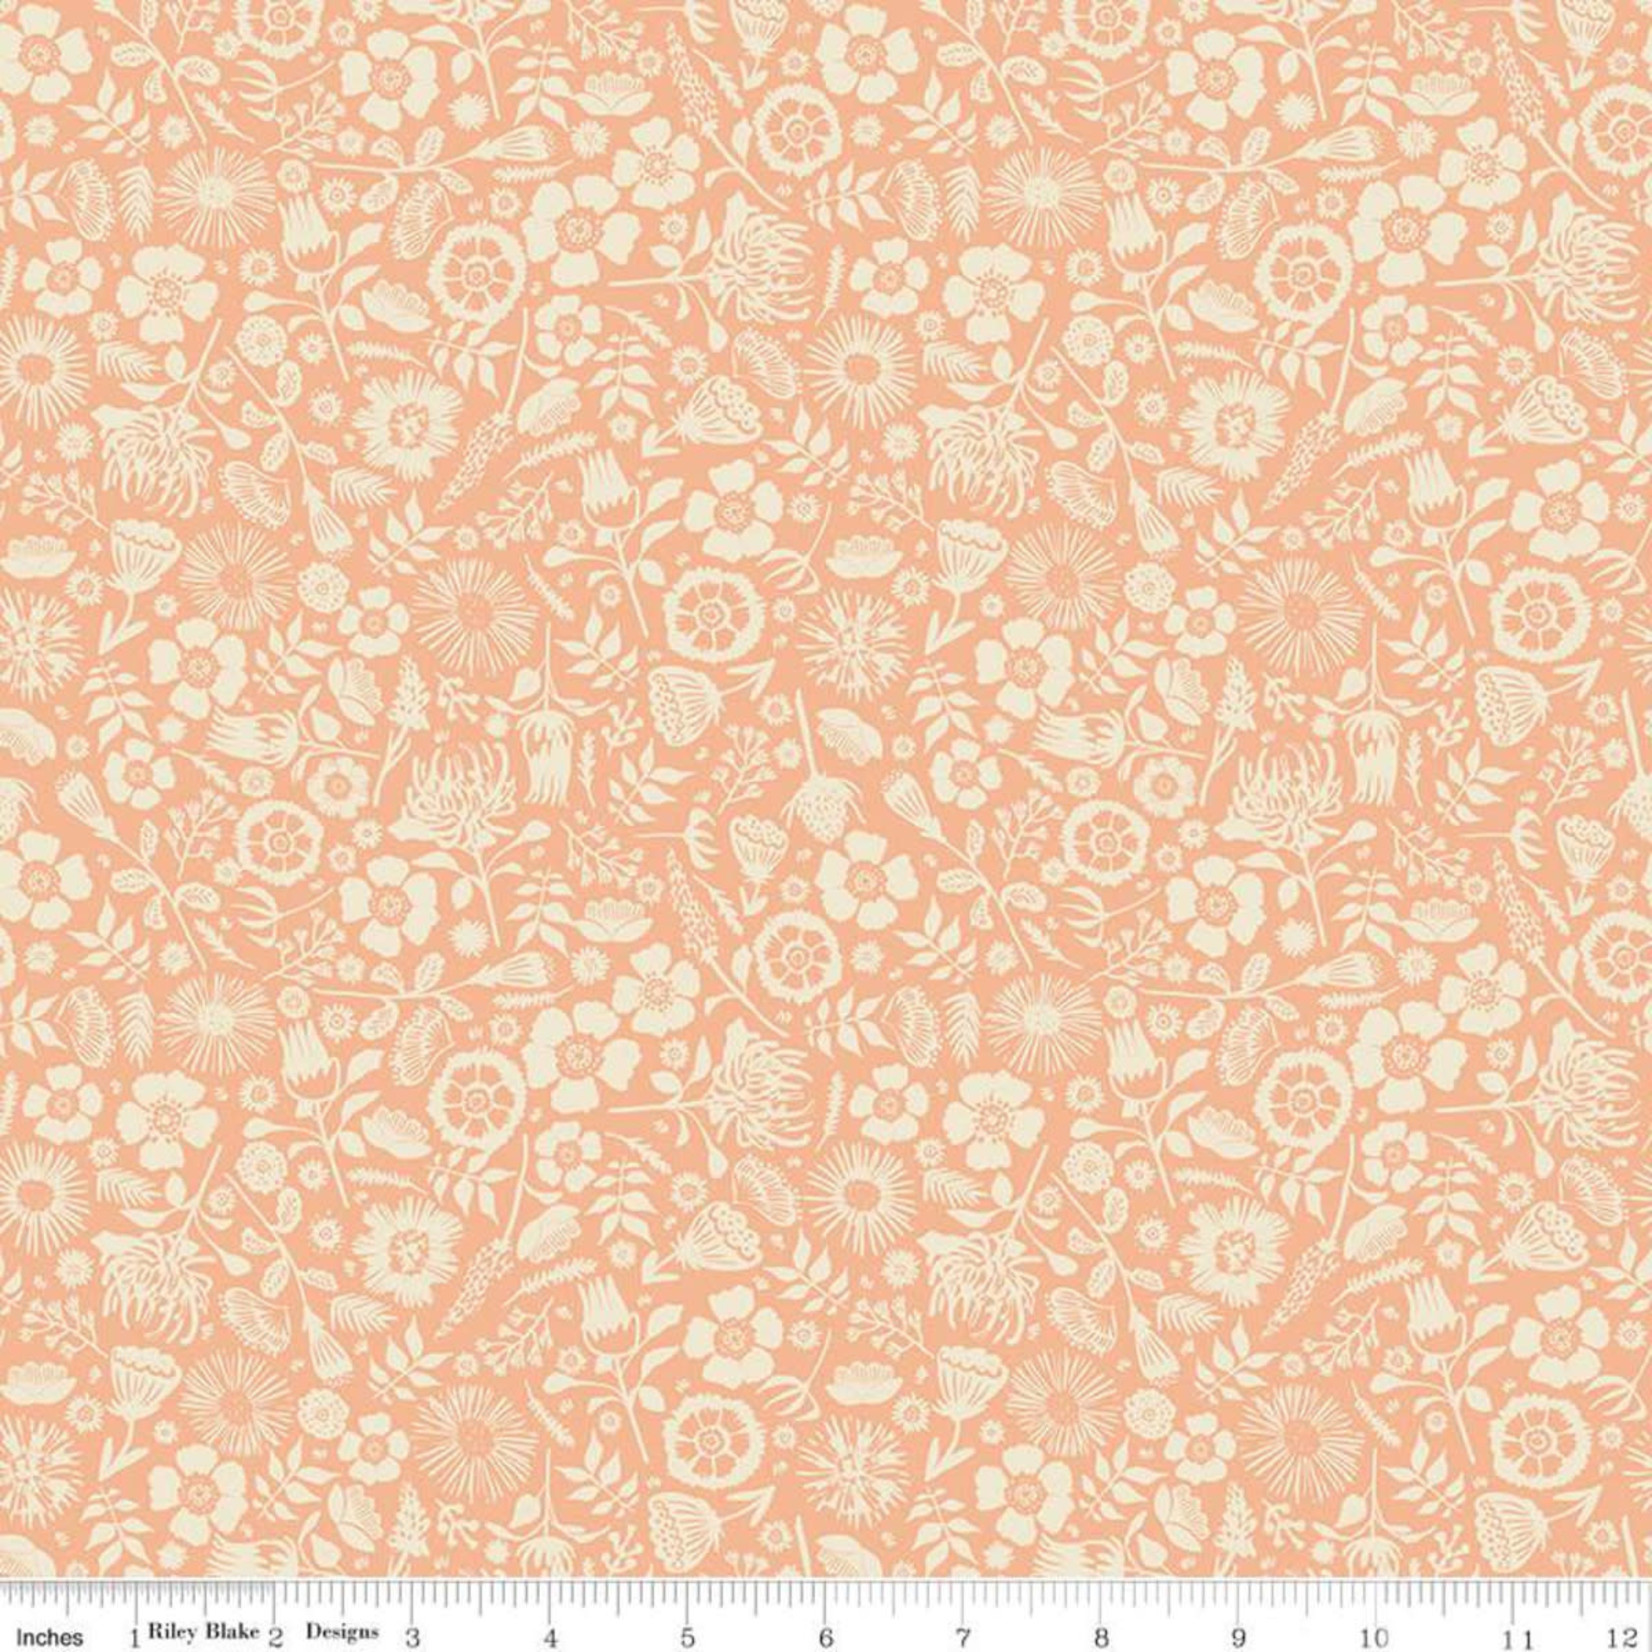 RILEY BLAKE DESIGNS MEADOW LANE, FLORAL IMPRINT, MELON C10125 PER CM OR $20/M